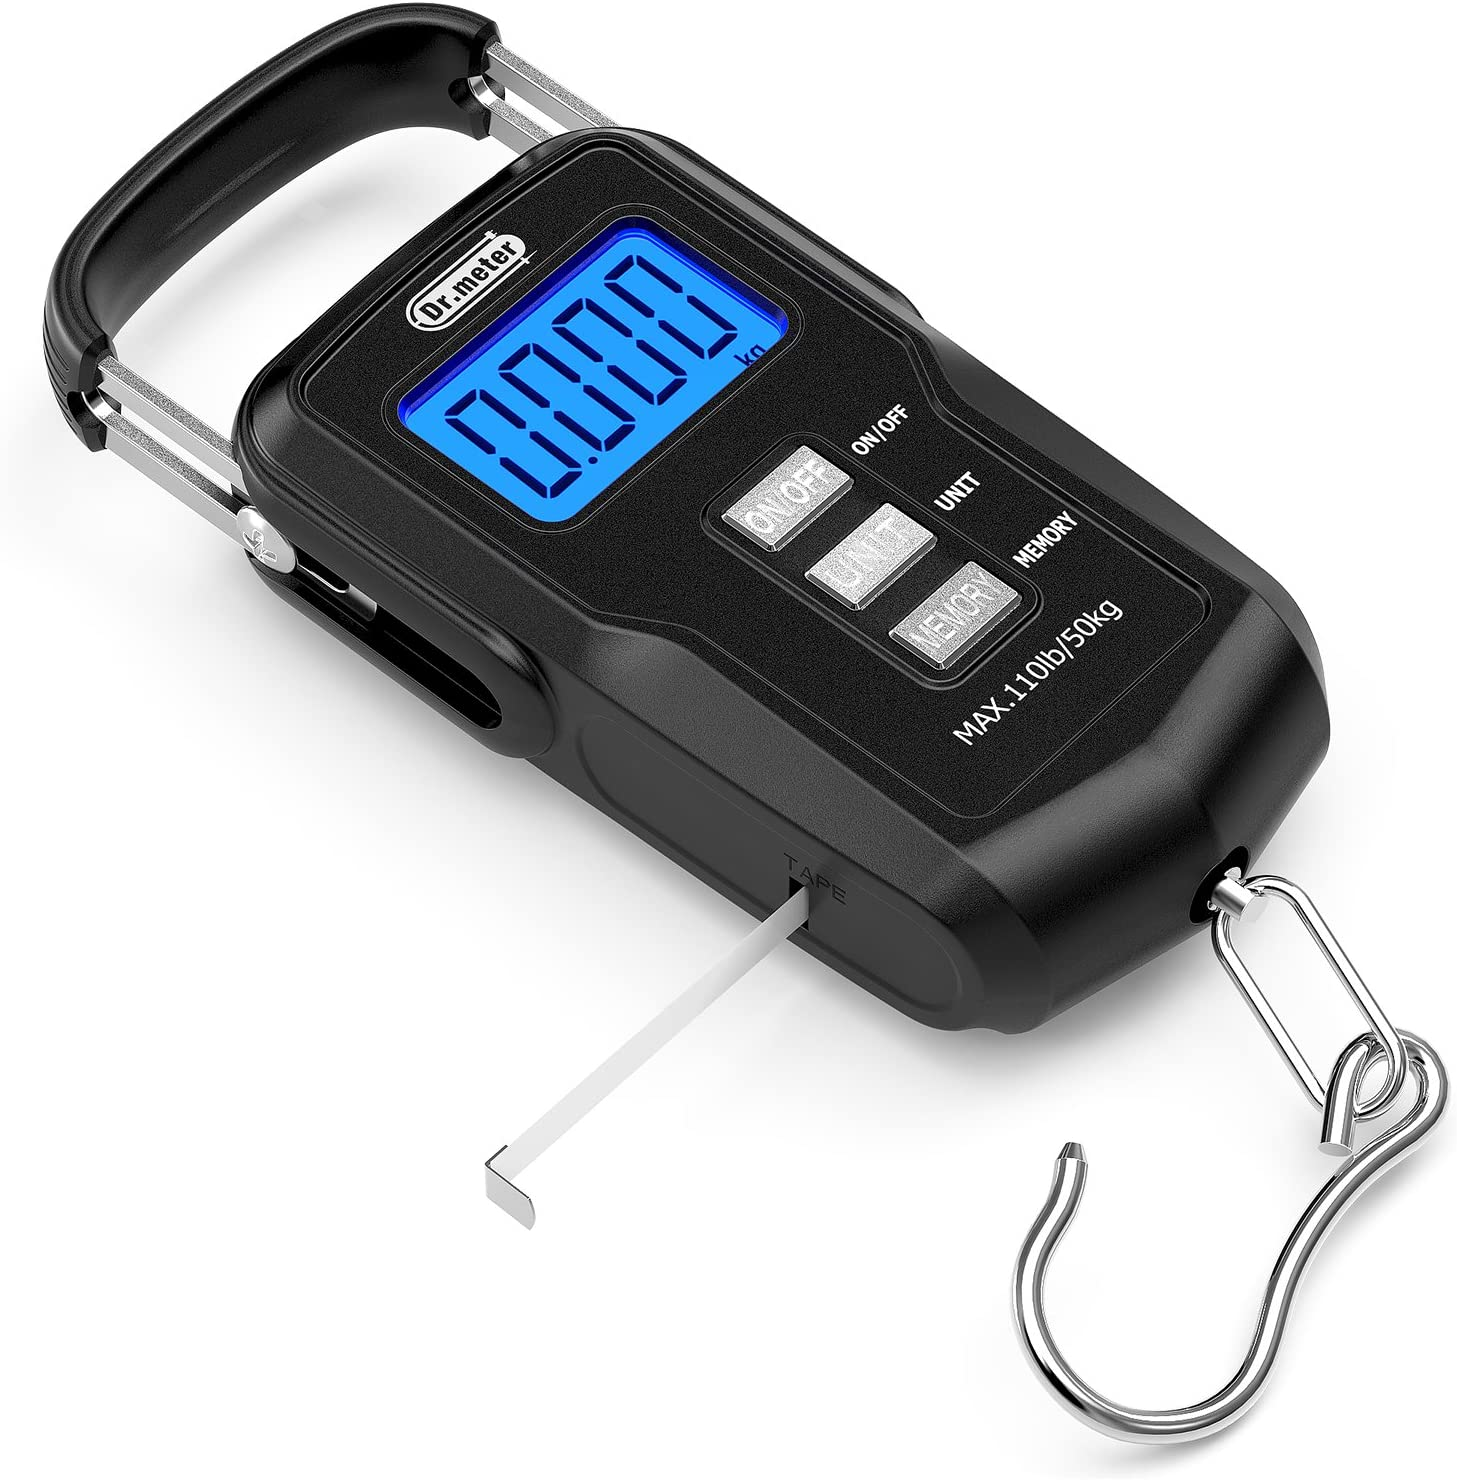 [Upgraded] Dr.meter FS01 Fishing Scale, 110lb/50kg Digital Hanging Scale with Backlit LCD Display, Measuring Tape and 2 AAA Batteries